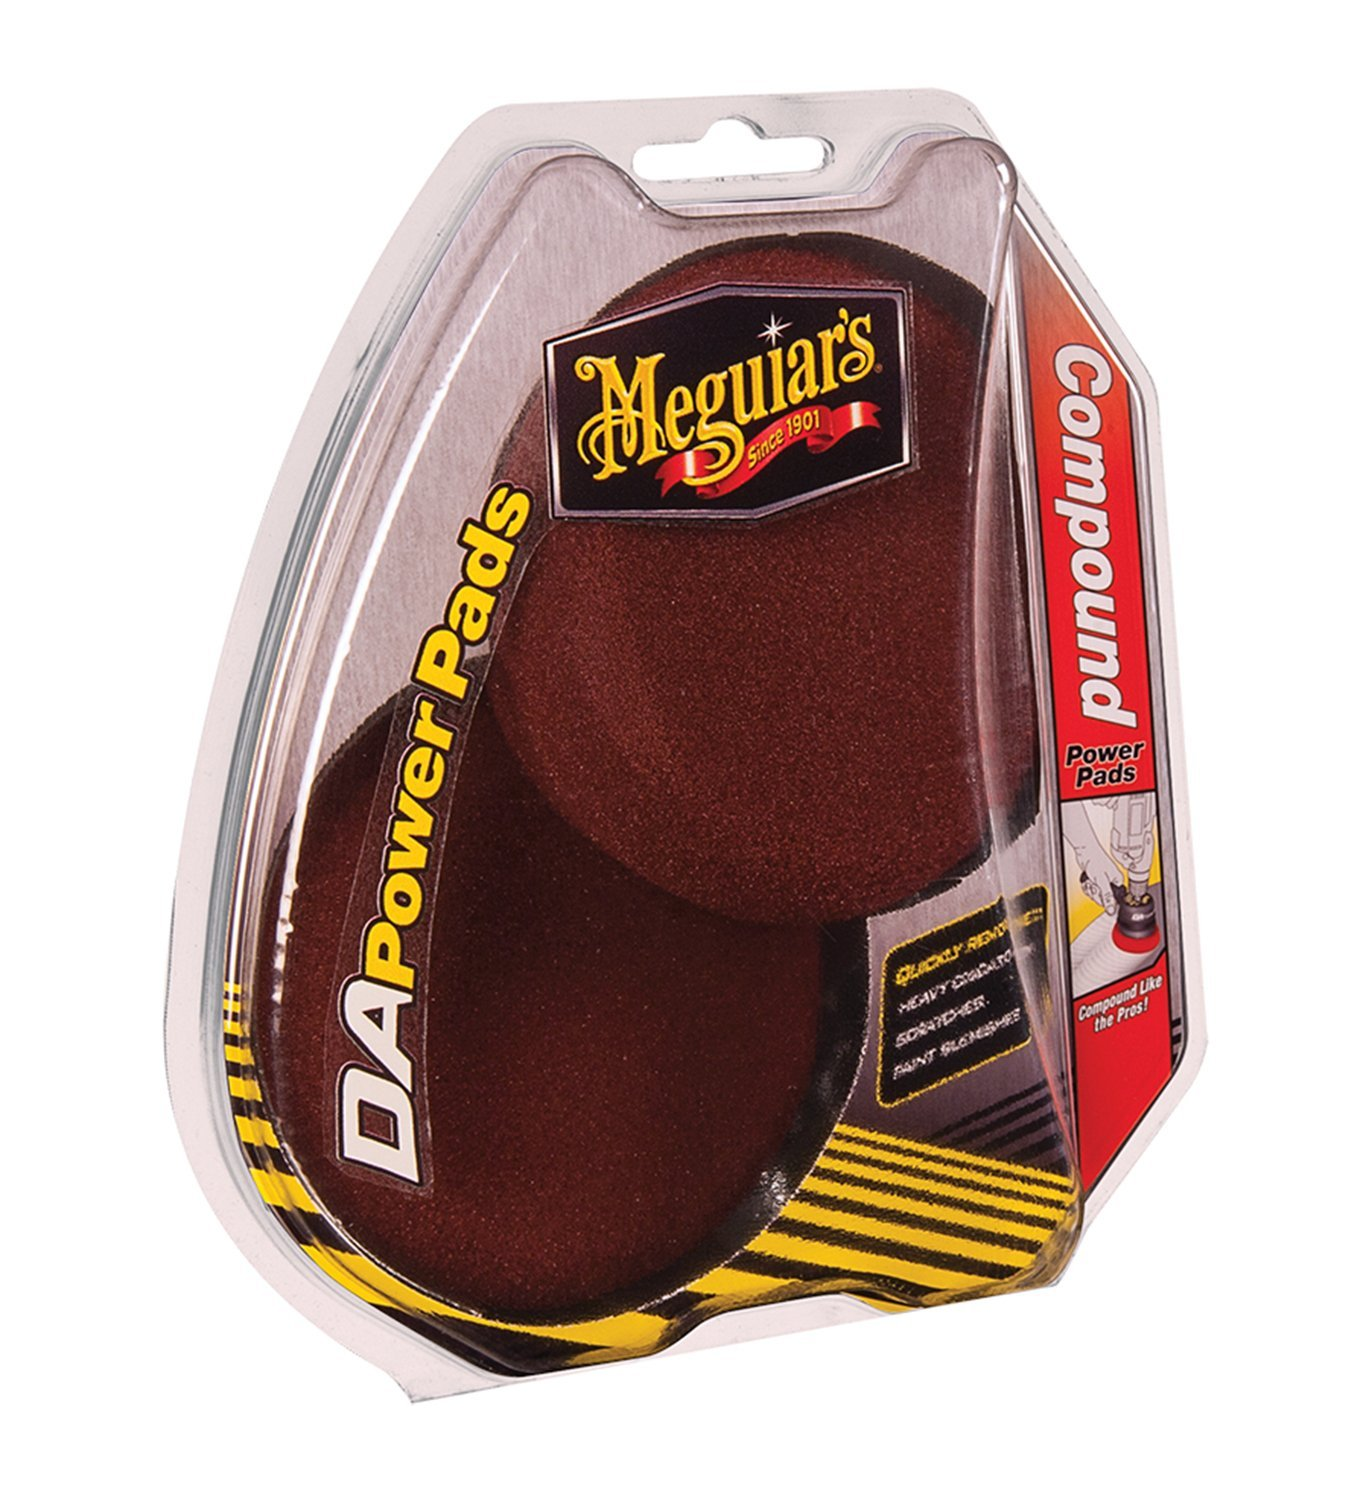 Meguiars DA Power Pads Compound Polierpad Aufbereitung Politur 2 Stk G3507INT